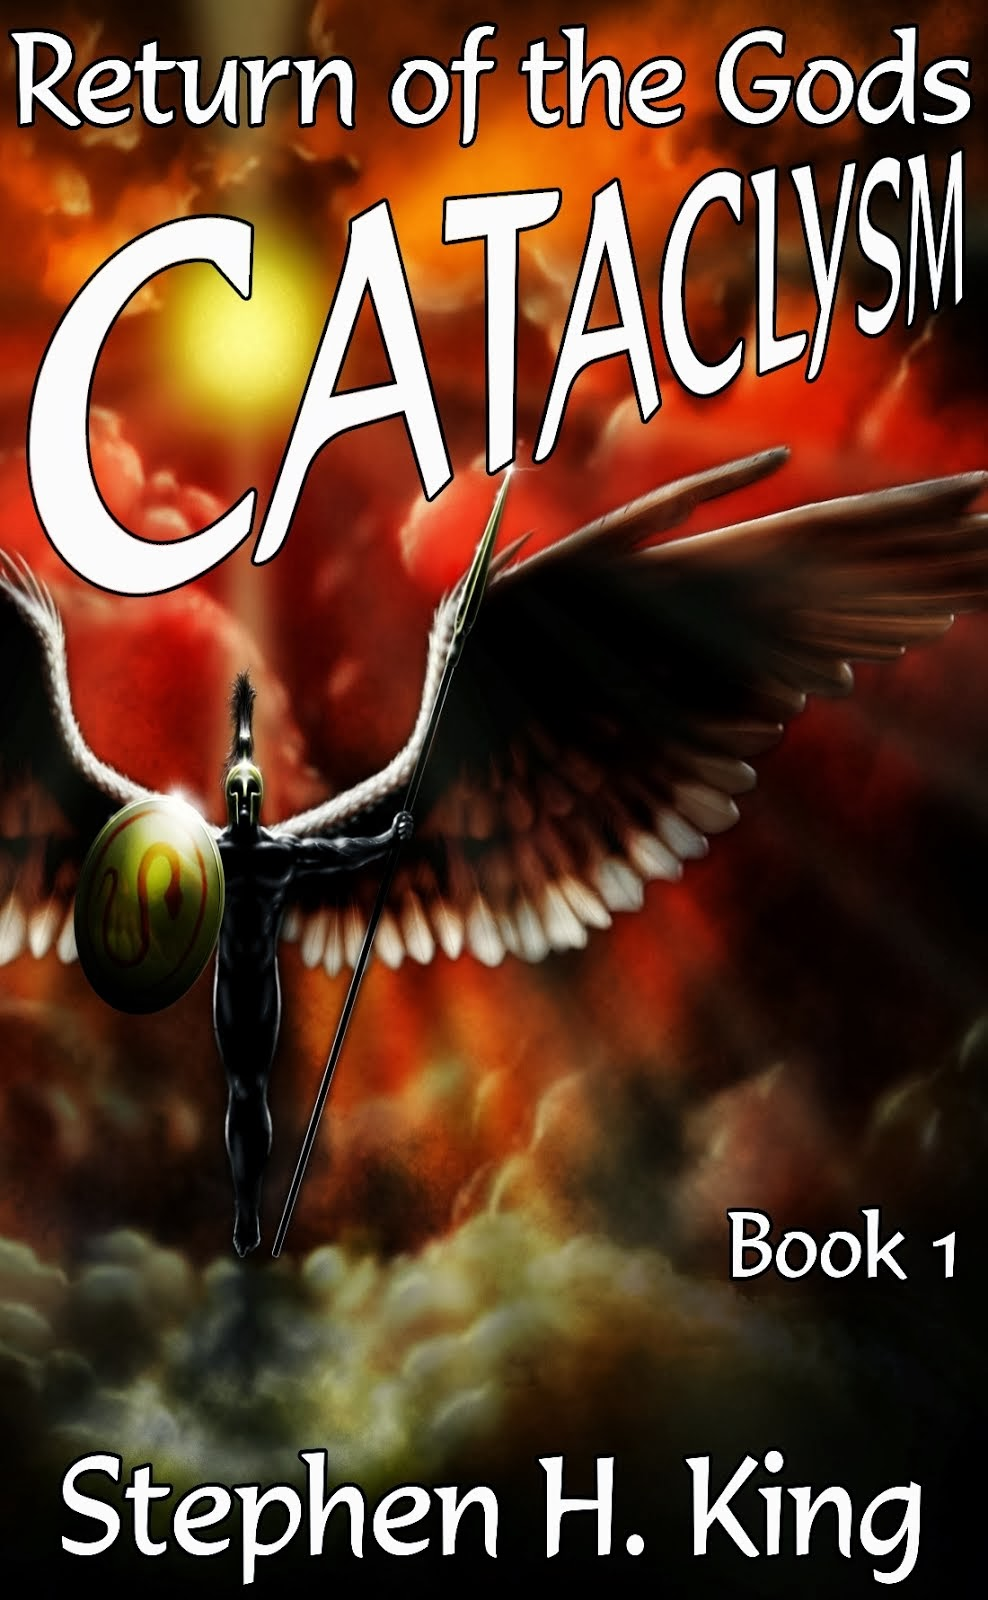 Cataclysm, Return of the Gods (Book 1)